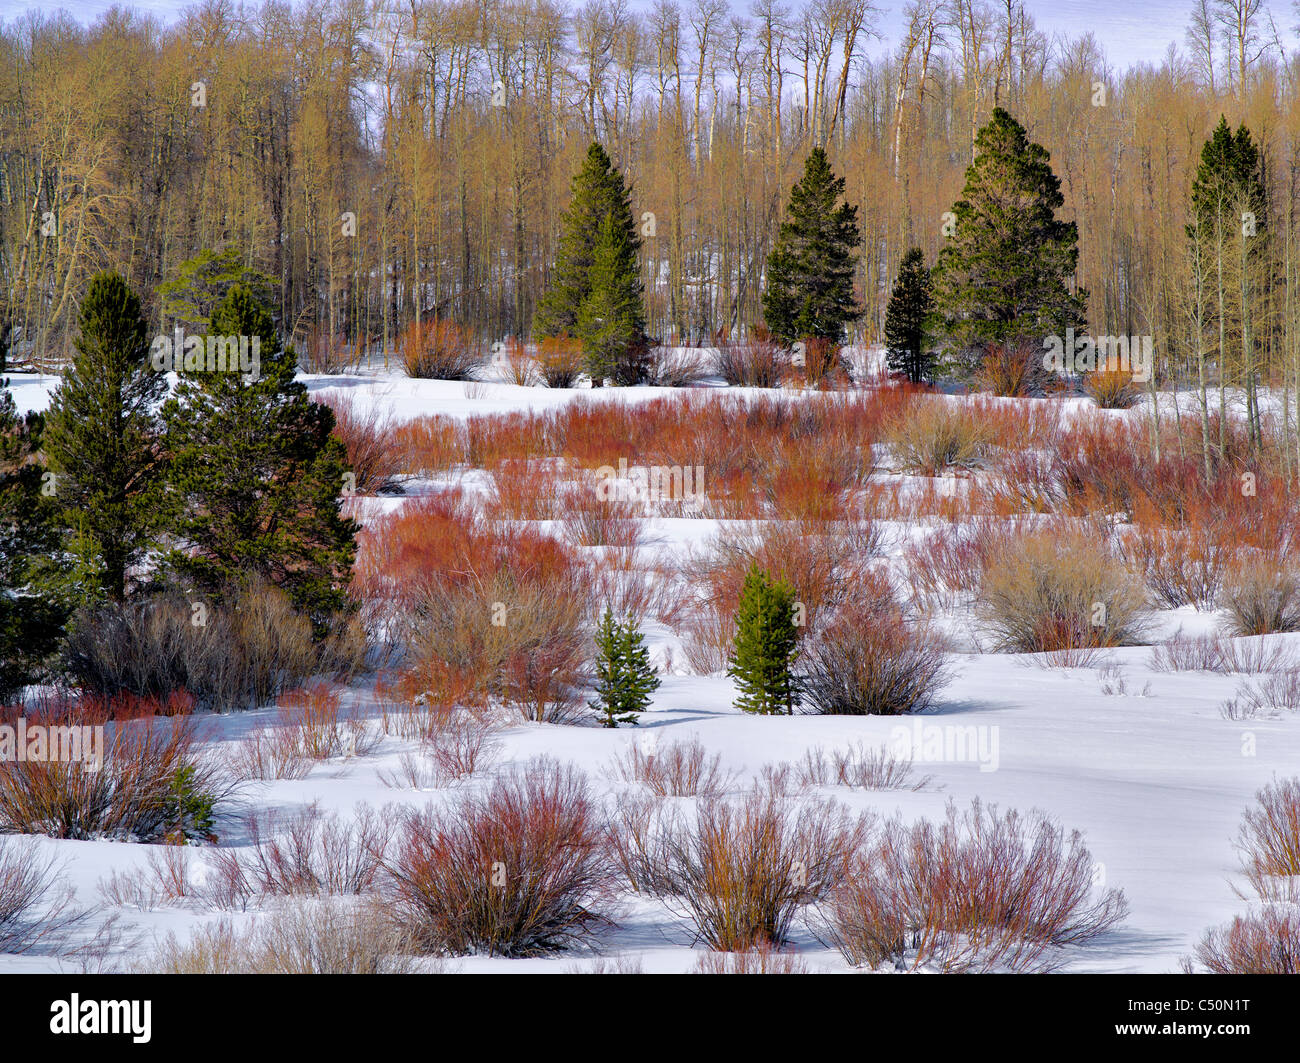 Red willows and snow in meadow. Humbolt-Toiyabe National Forest, California - Stock Image